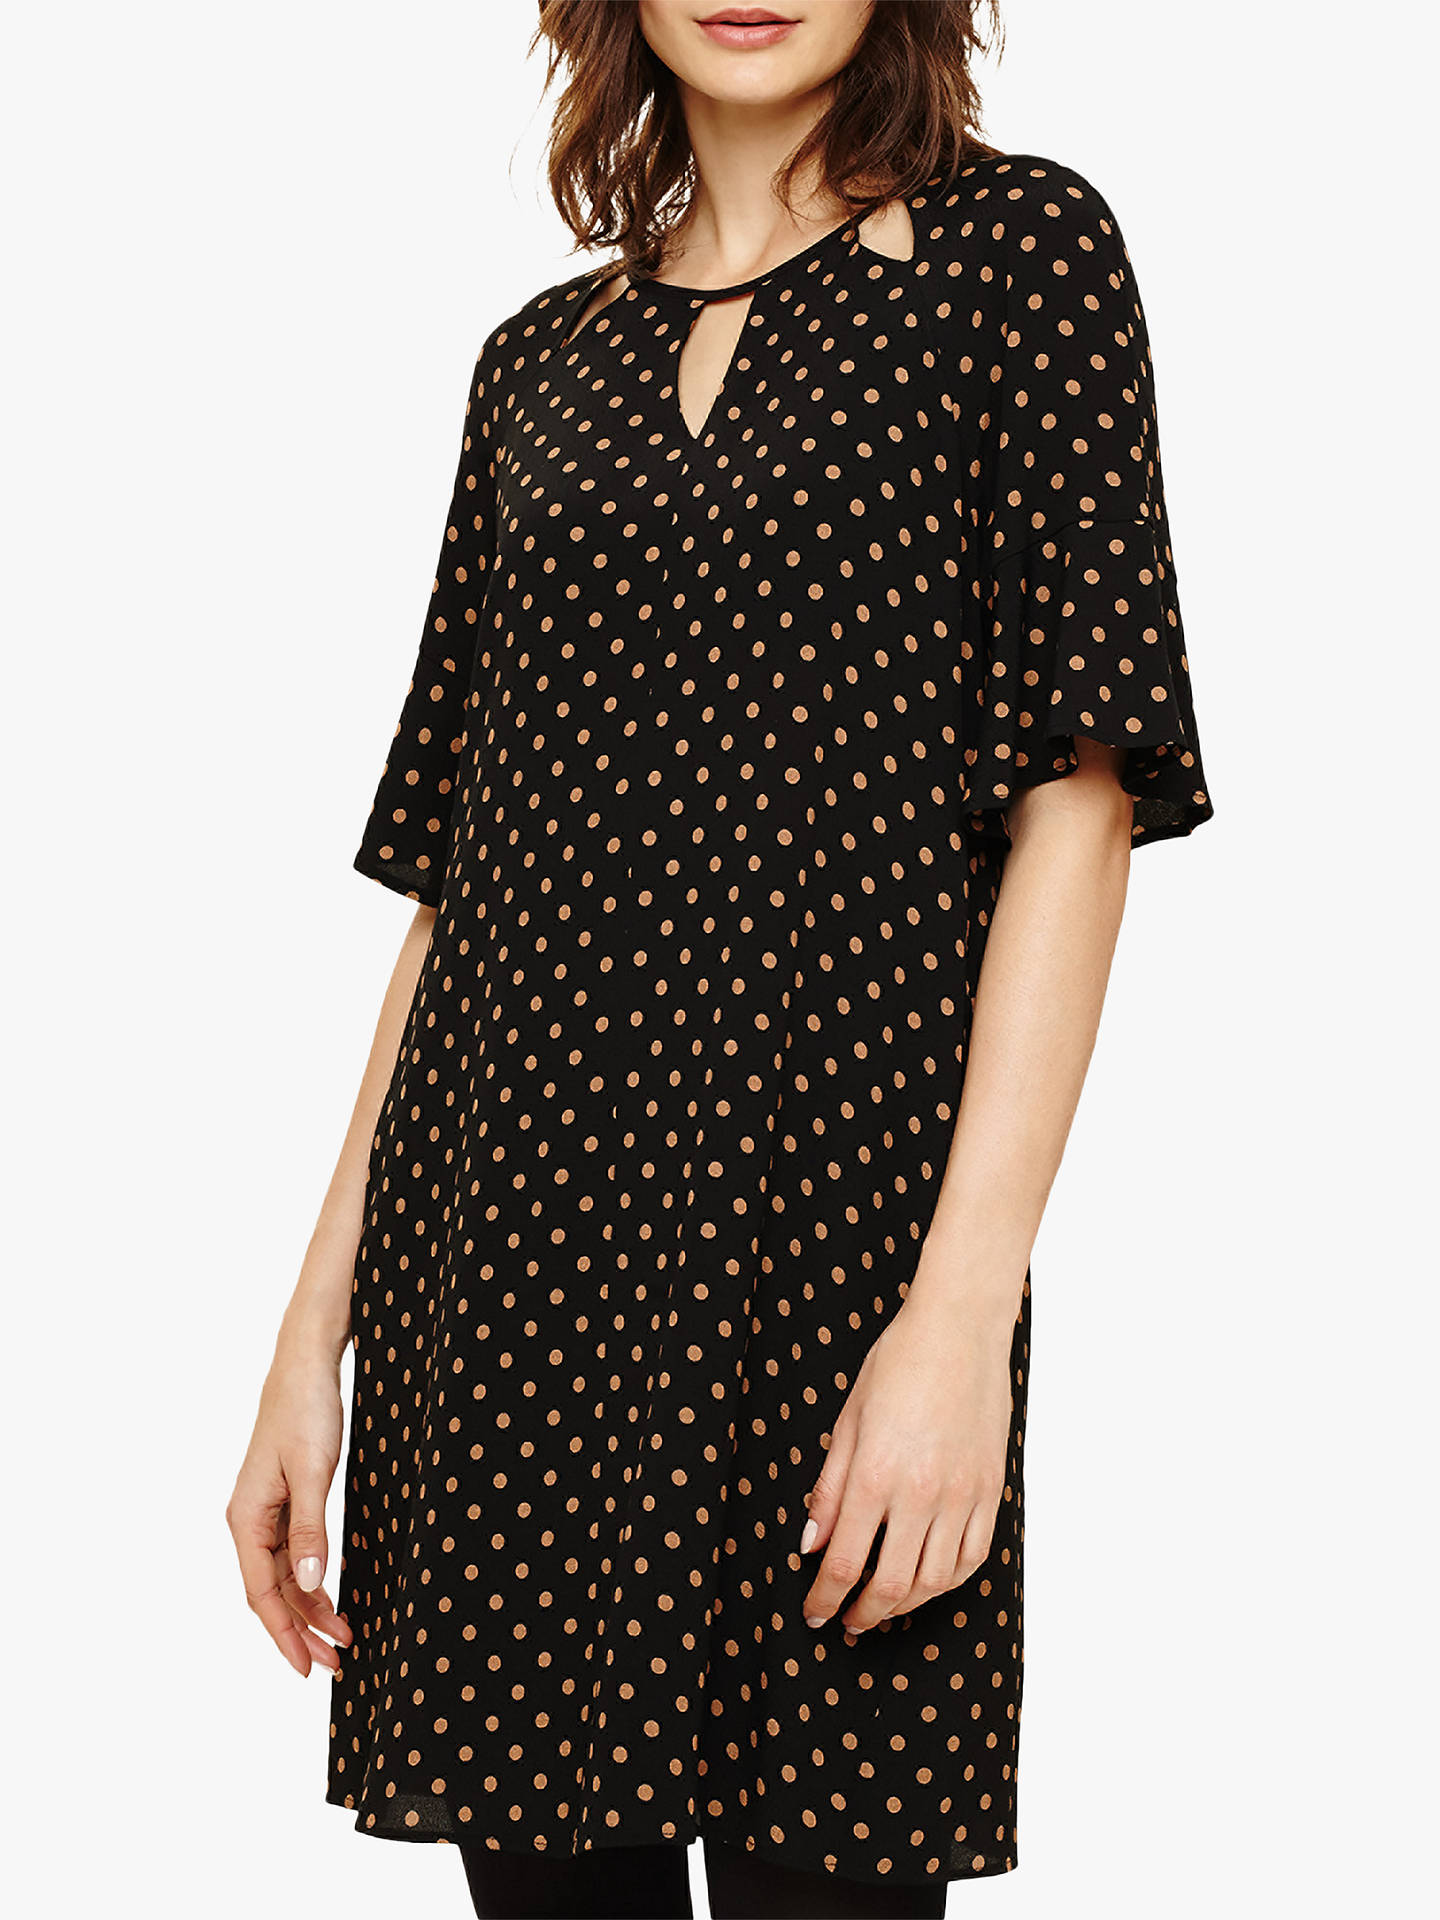 BuyPhase Eight Zoe Spot Shift Dress, Black/Camel, 8 Online at johnlewis.com